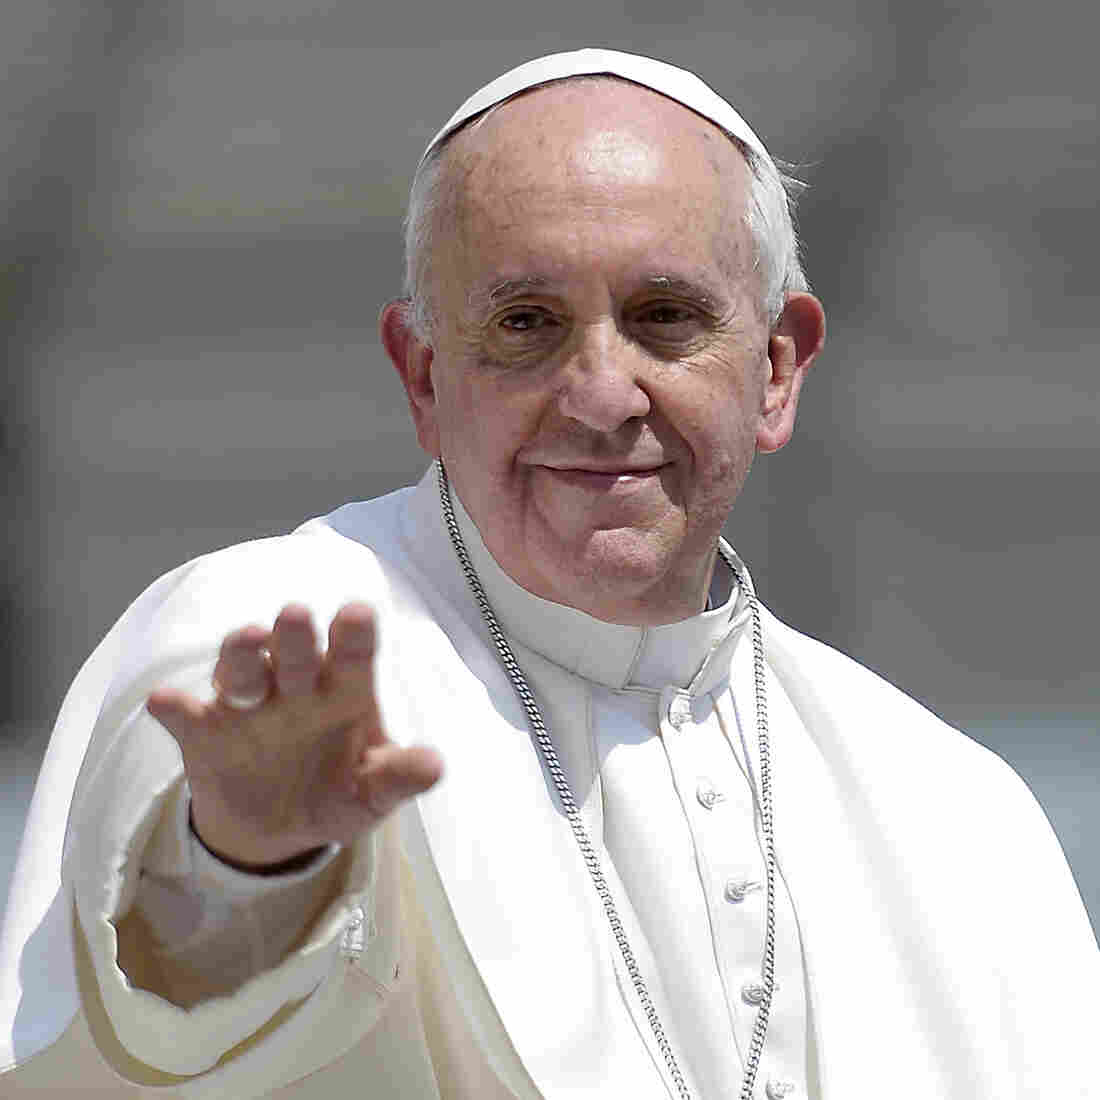 """Pope Francis began his papacy in March. In his first year as pope, columnist James Carroll says, Francis has put unprecedented focus on """"the dilemma of the vast majority of human beings who simply don't have enough to live decently."""""""